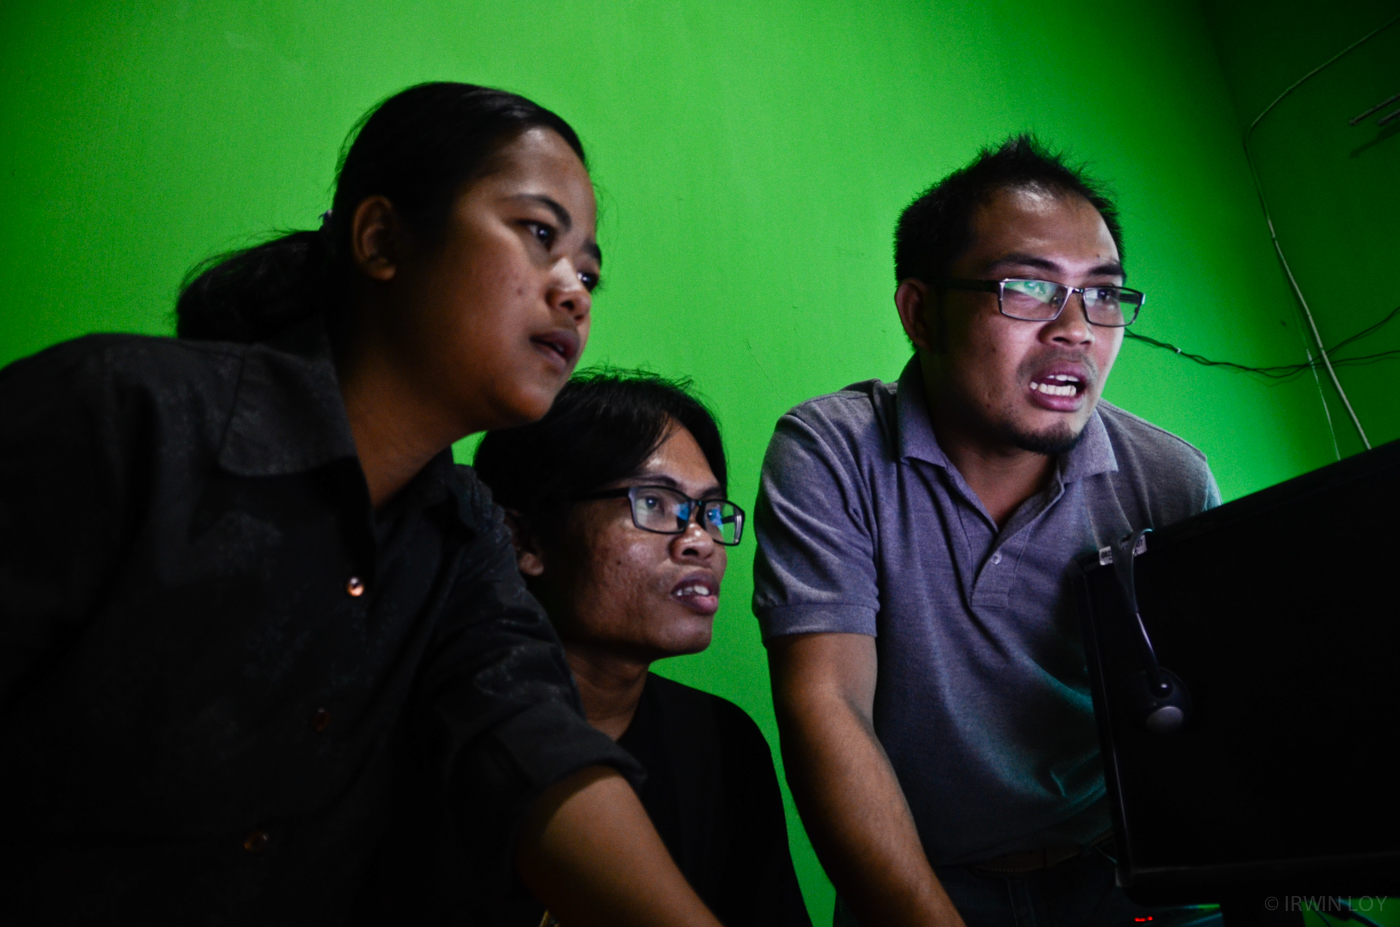 Journalists at RuaiTV, a community television station in Pontianak, receive news sent in by SMS, follow up on promising leads, and send the news out later by text message.